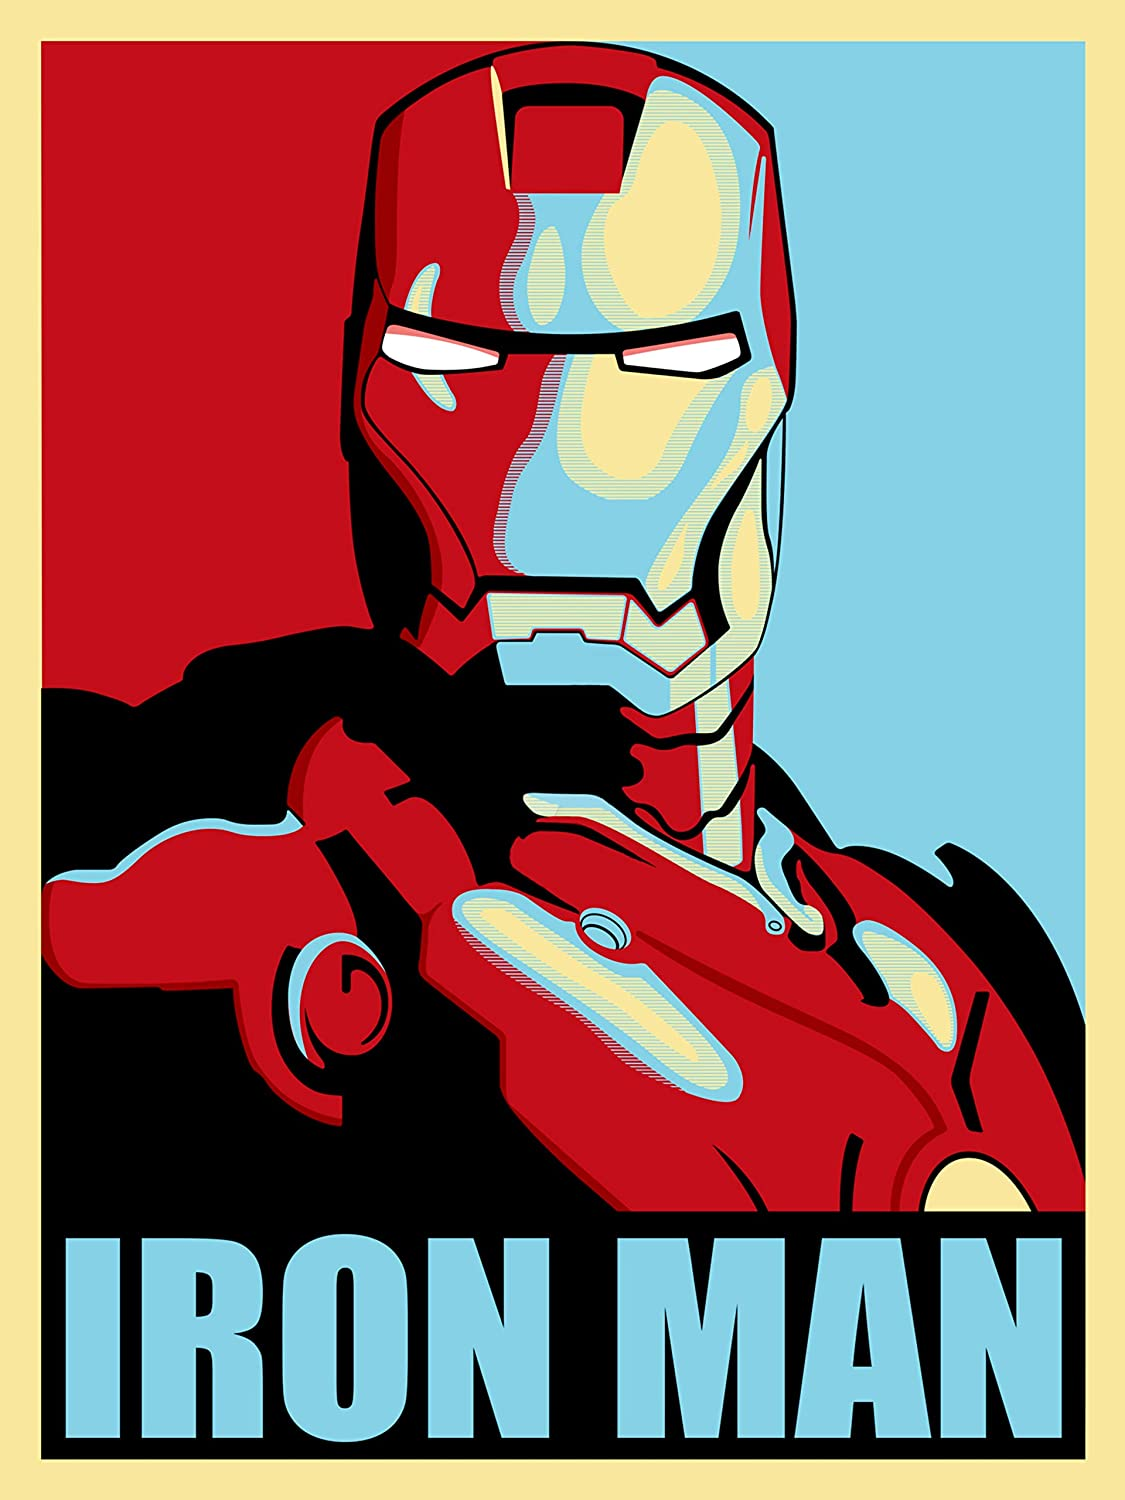 LLp Iron Man Poster Size 18-Inches by 24-Inches Wall Poster Print